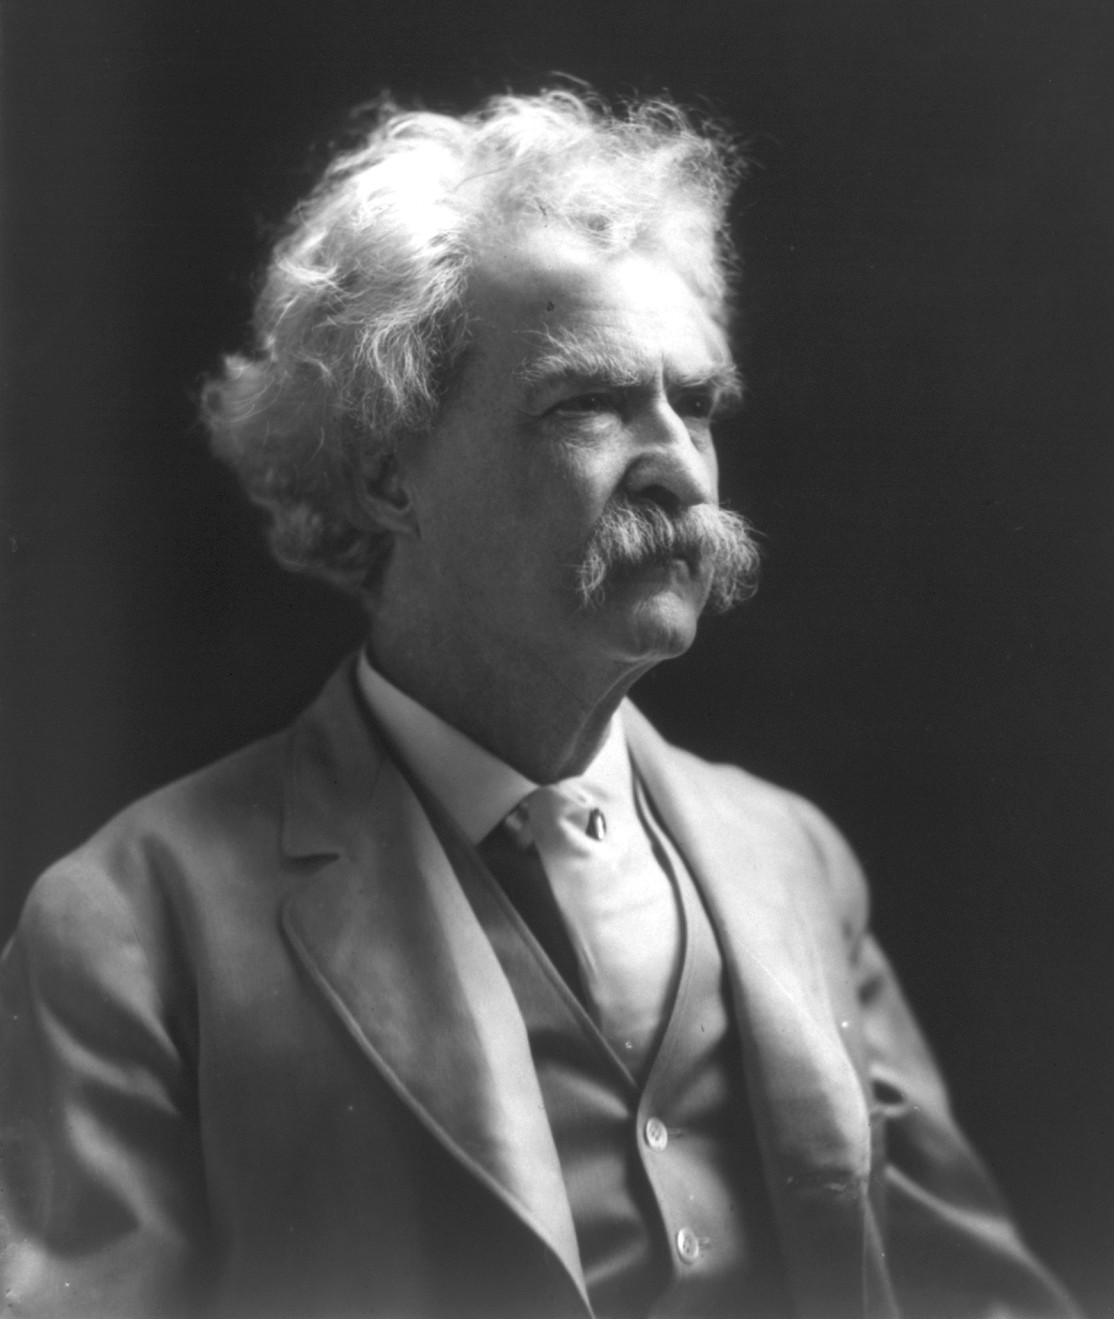 huckleberry finn racism essay best ideas about huckleberry finn  understanding huckleberry finn a novel by mark twain samuel portrait of mark twain